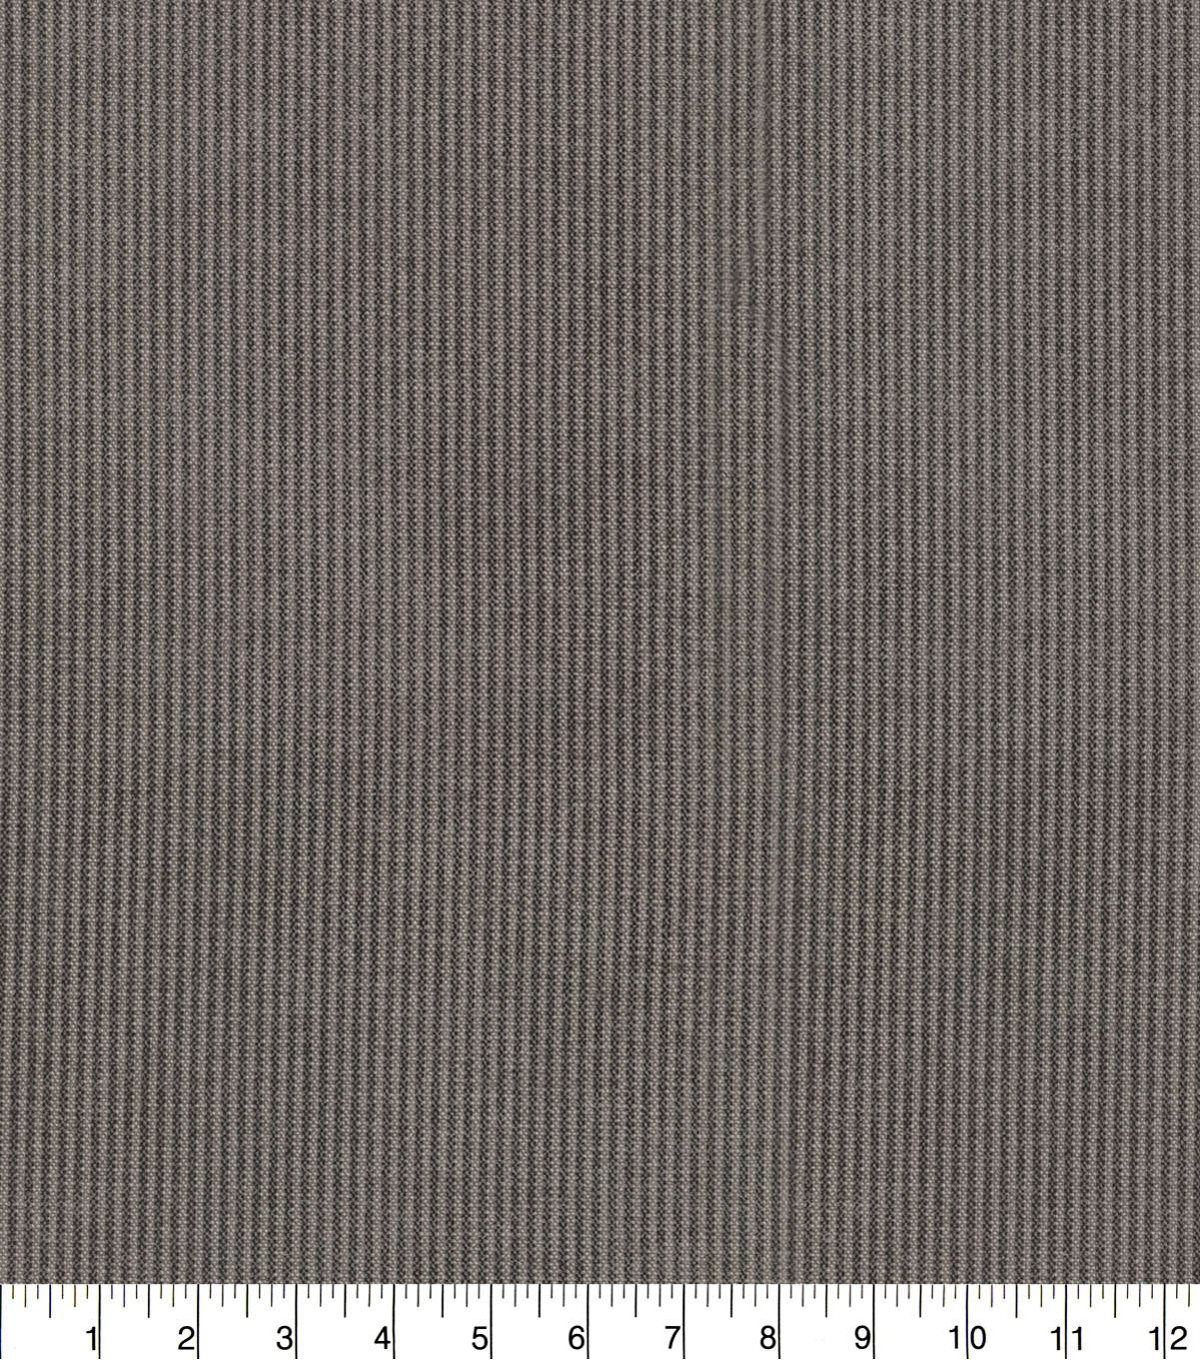 PKL Studio Upholstery Décor Fabric 9\u0022x9\u0022 Swatch-Slim Fit Charcoal